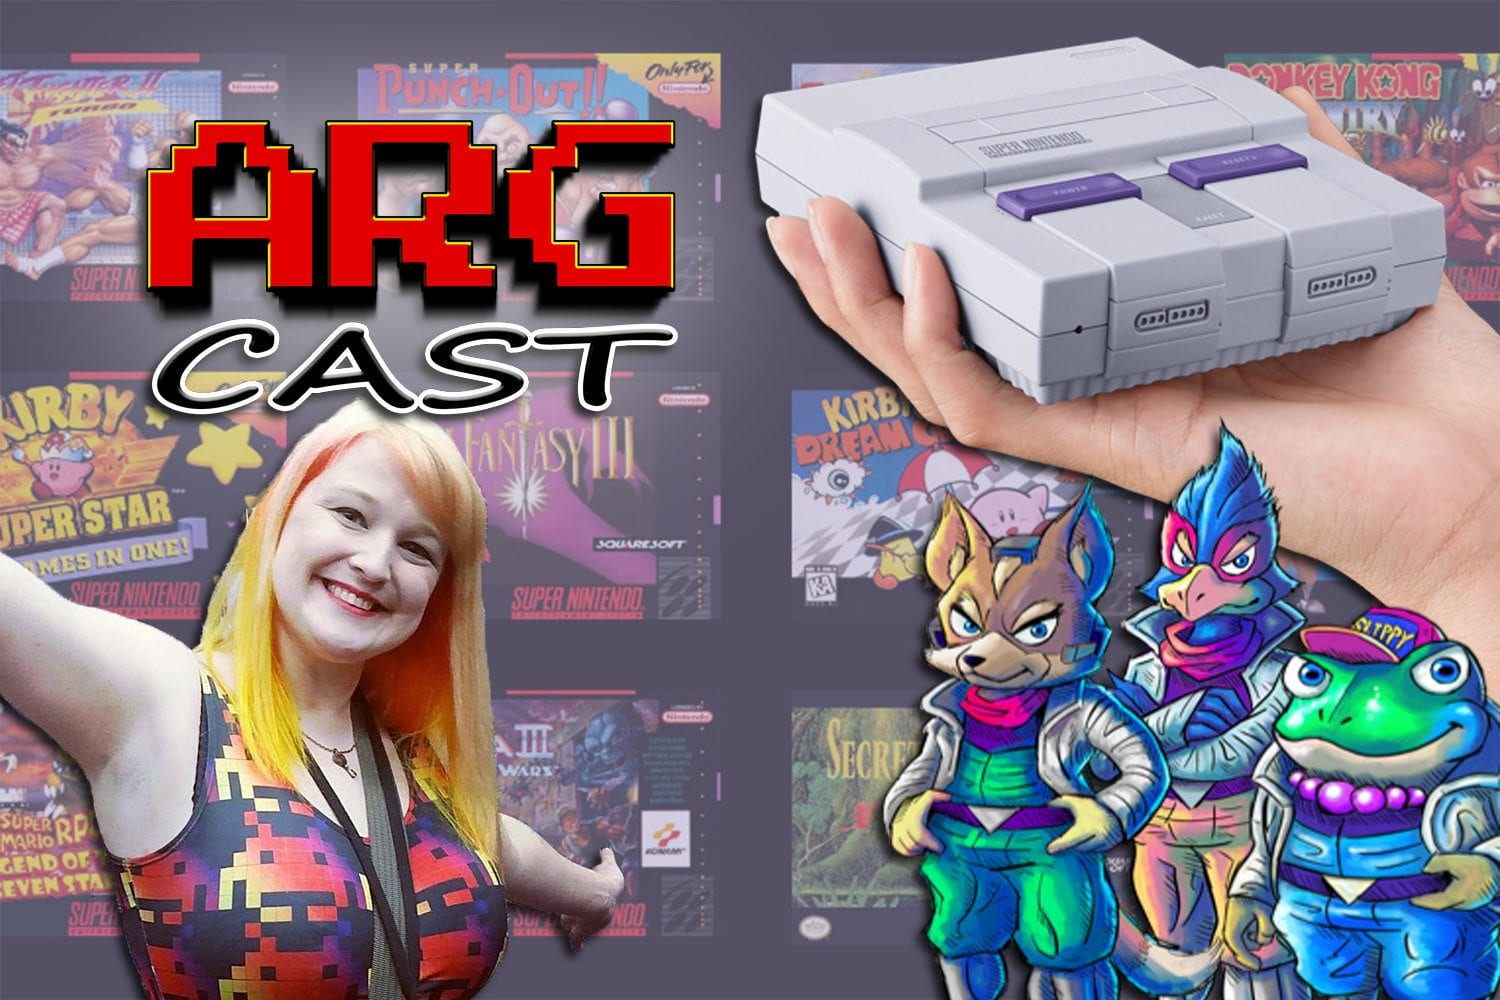 ARGcast #66: SNES Classic and Star Fox 2 with Kinsey Burke